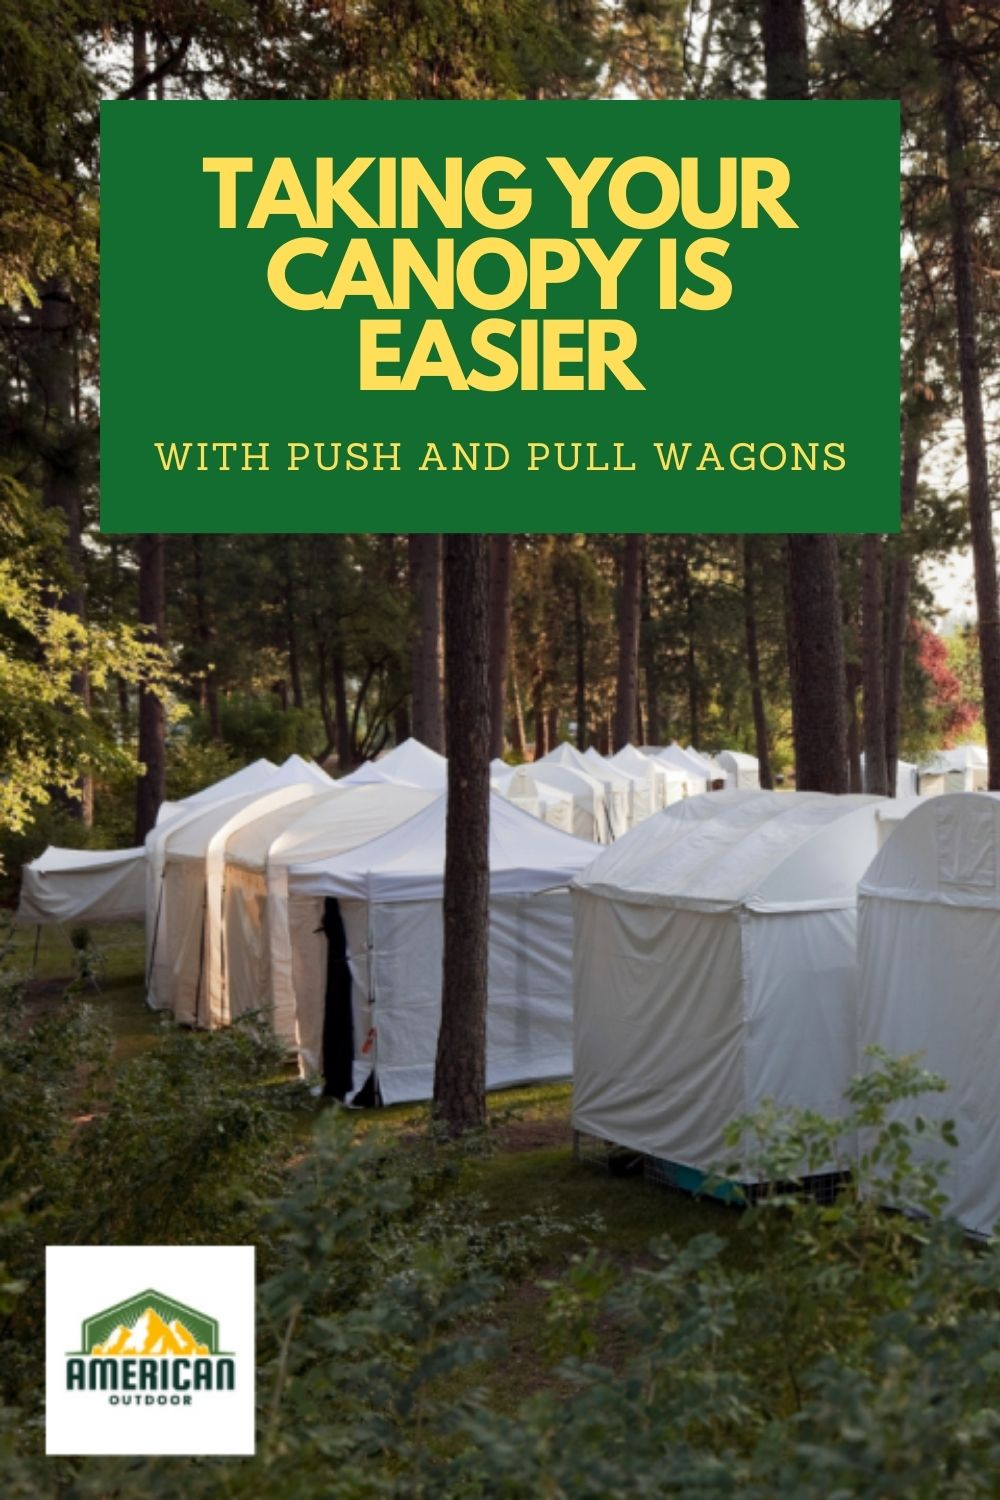 Take Your Canopy Wherever You Go With Push and Pull Wagons